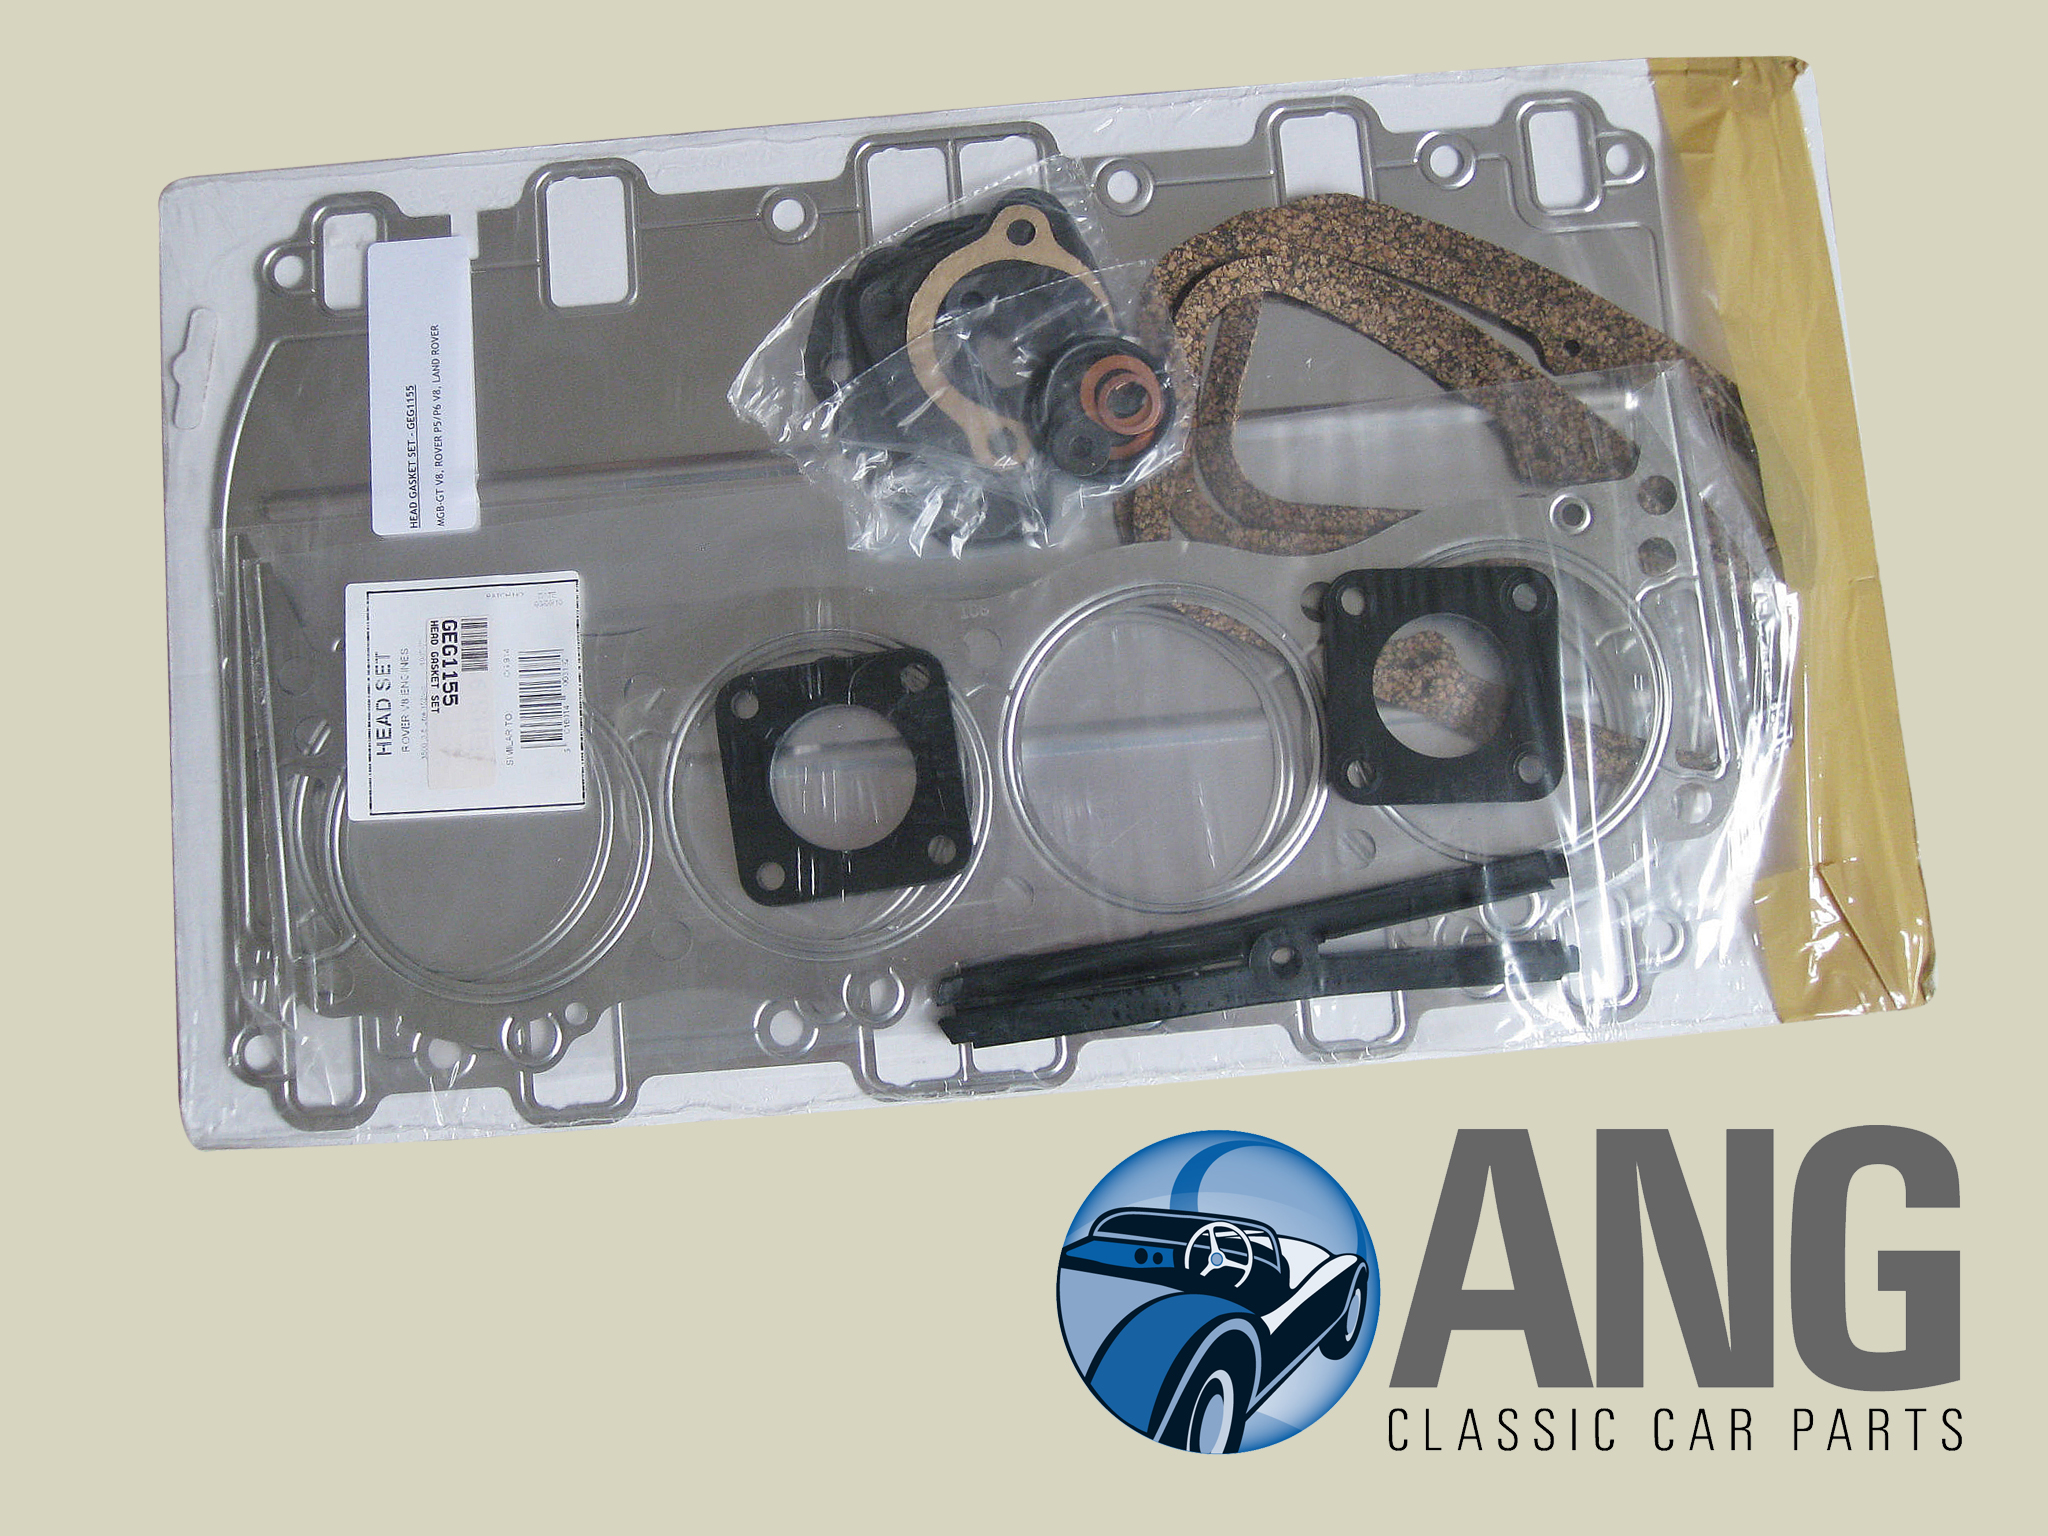 HEAD GASKET SET ; P5B V8, P6 3500 V8